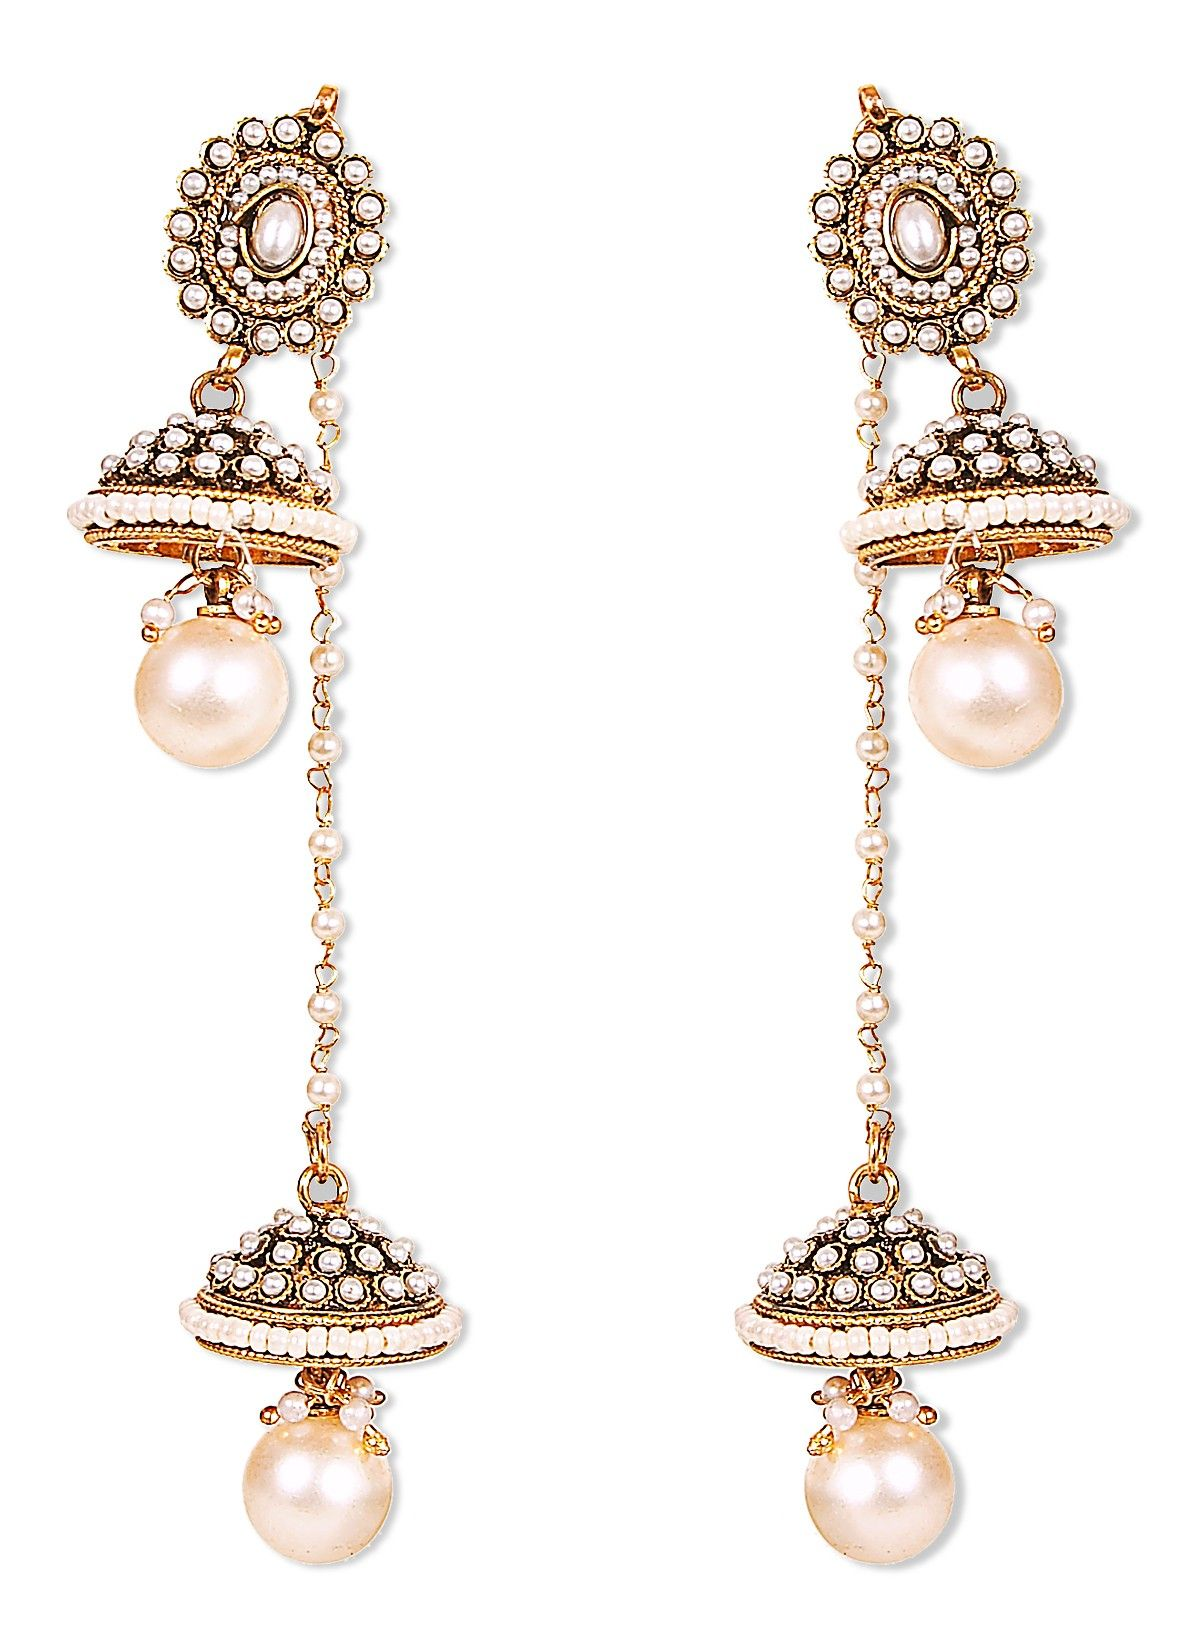 Shop for kashmiri Jewelry online with Jhumka Earrings for Women at